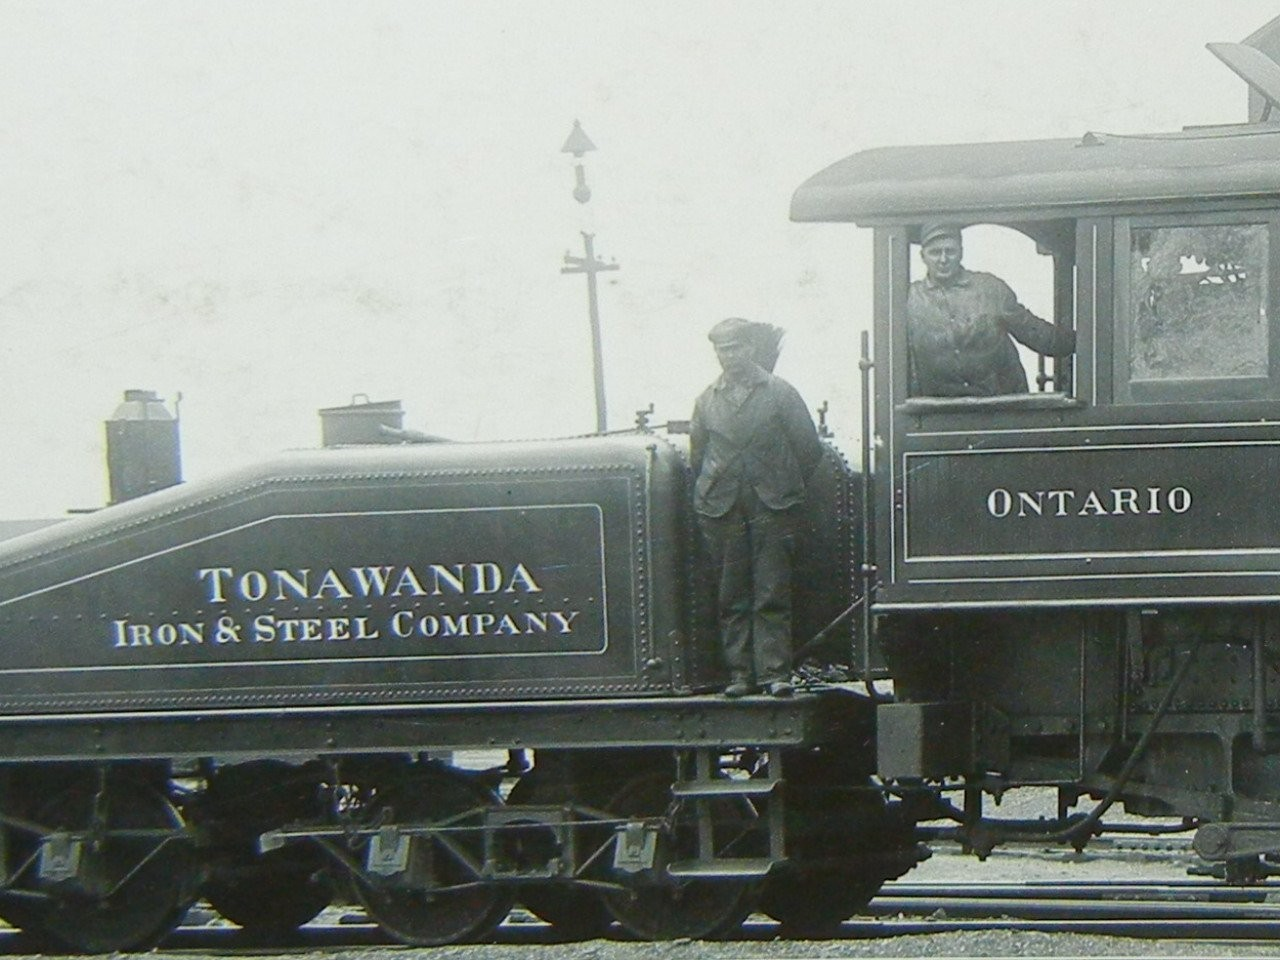 Tonawanda Iron and Steel Company locomotive, photo detail (1900s?).jpg